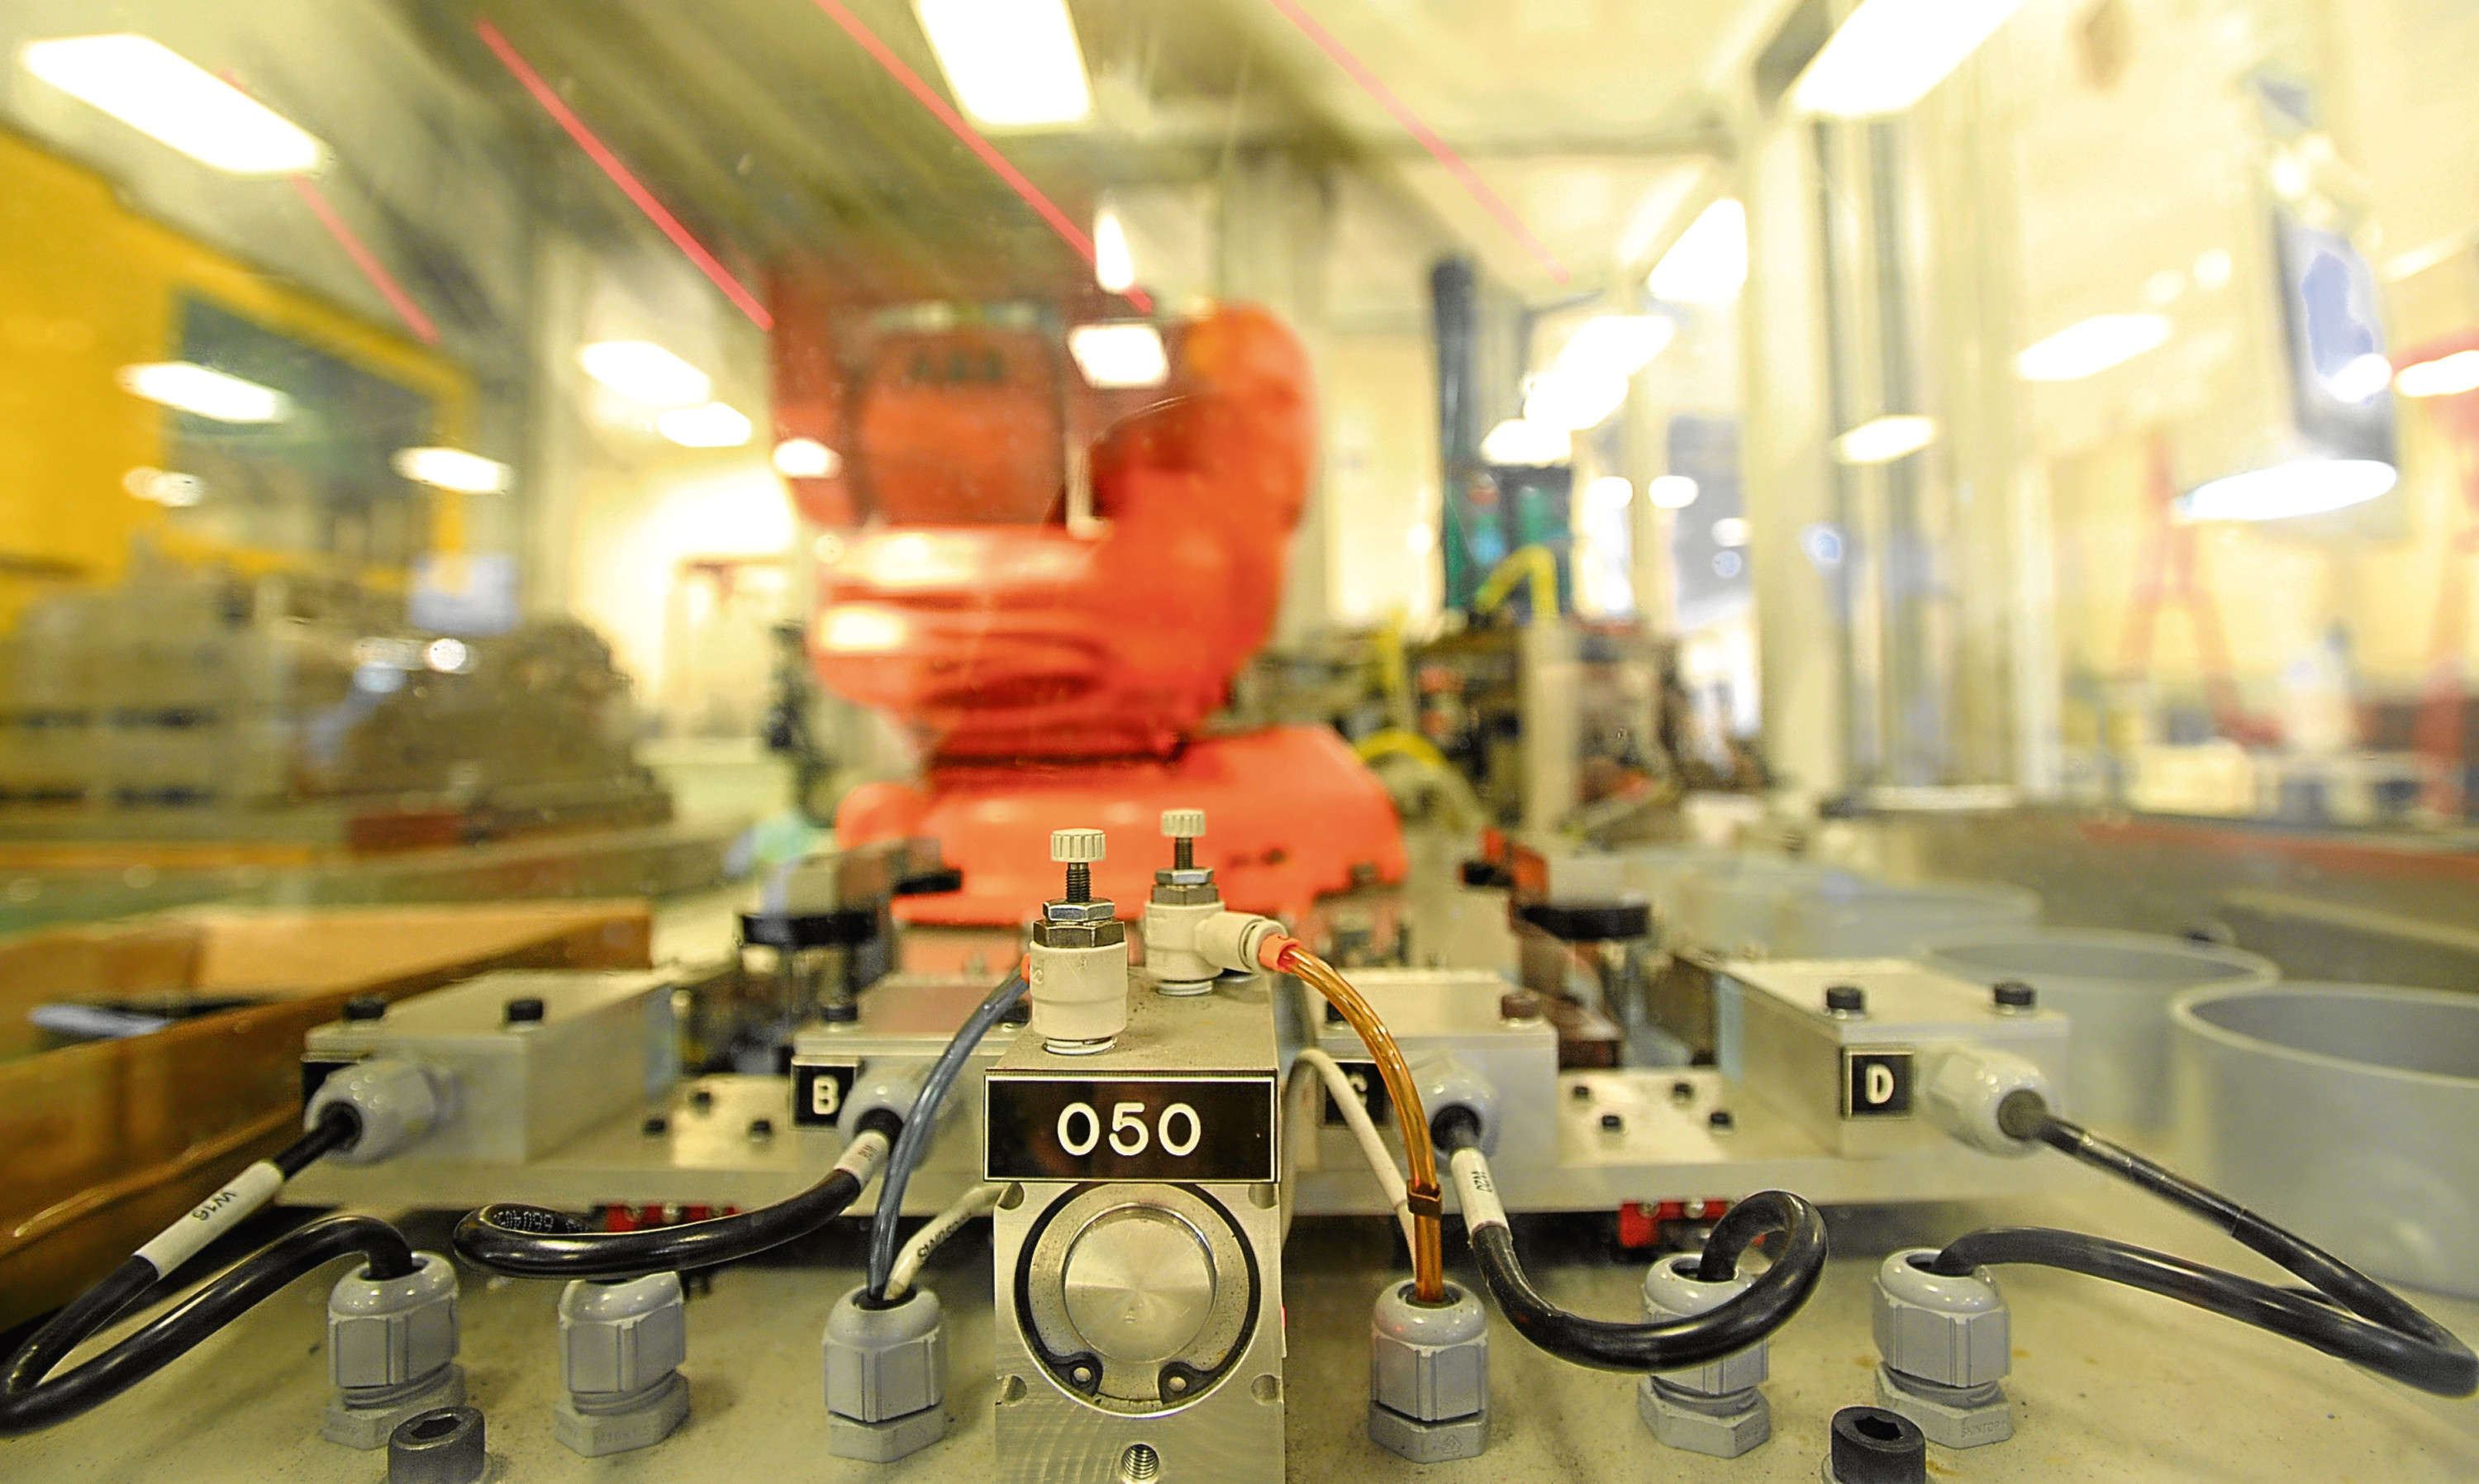 A robot carrying out a production task at Interplex PMP